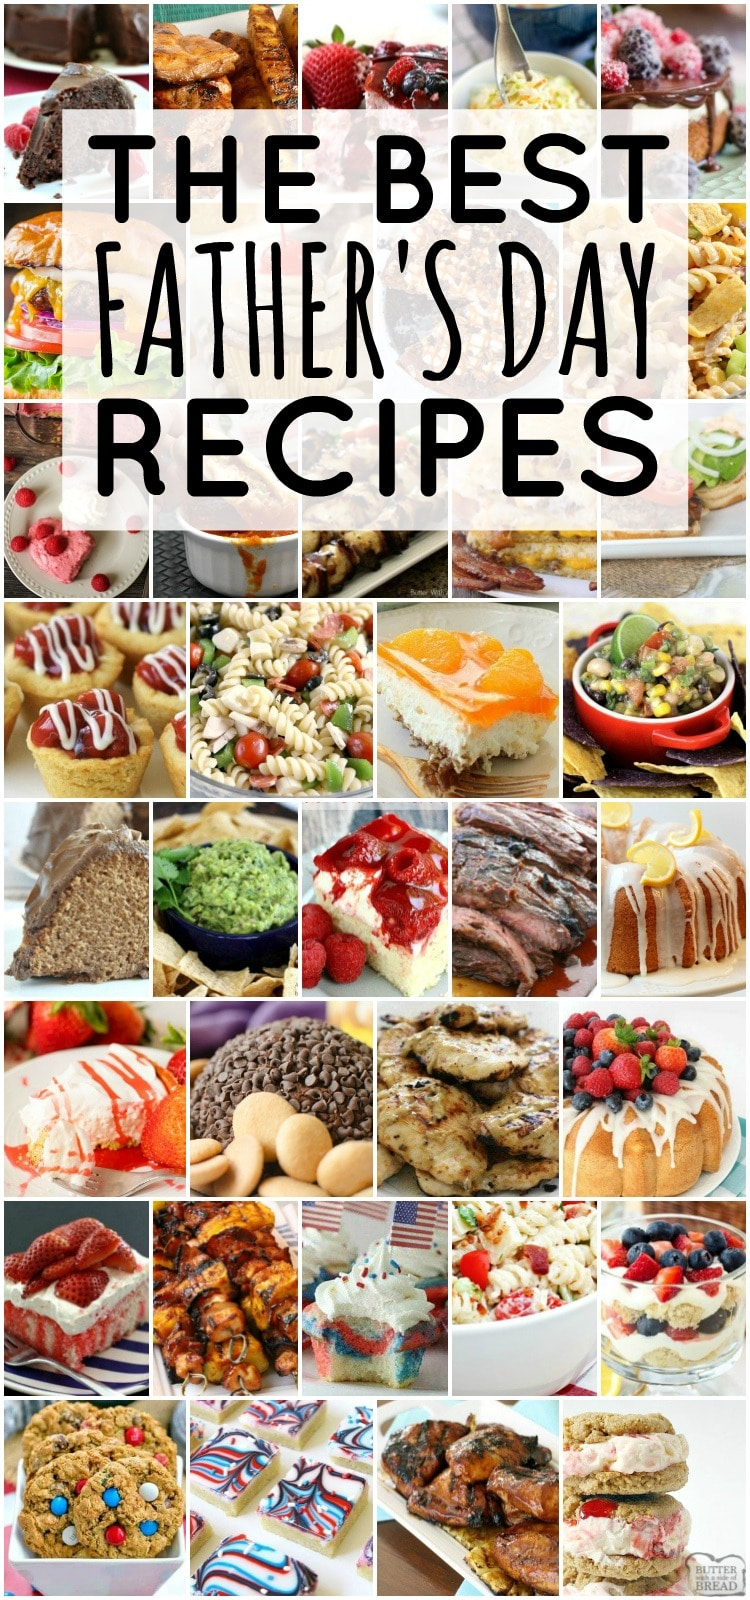 Best Father's Day recipe ideas for a very special day! Our favorites to make for Dad- everything from Father's Day Brunch to Father's Day Cake! Enjoy!